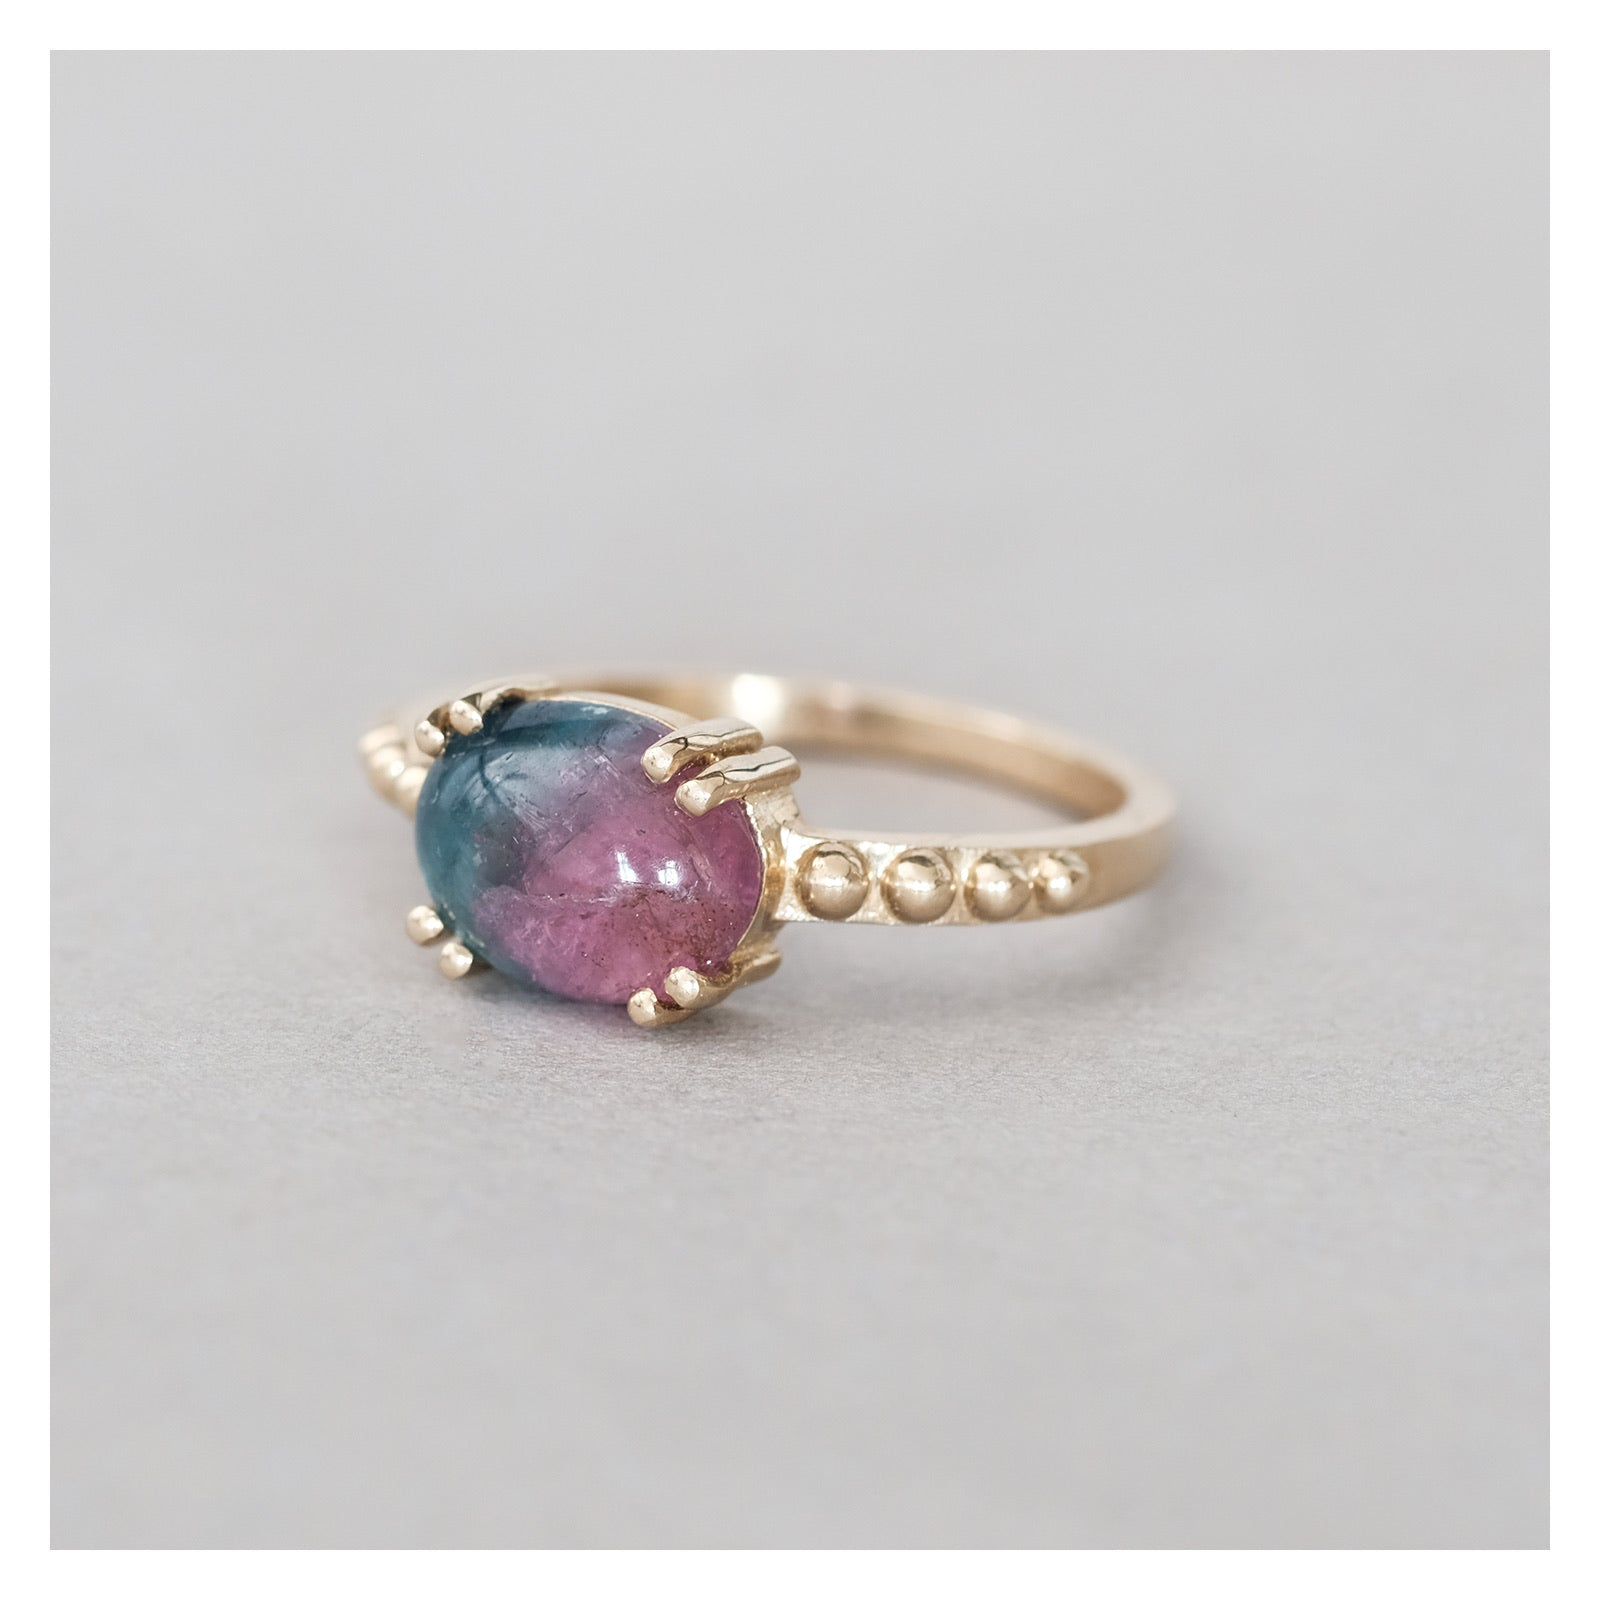 dale watermelon tourmaline ring #2